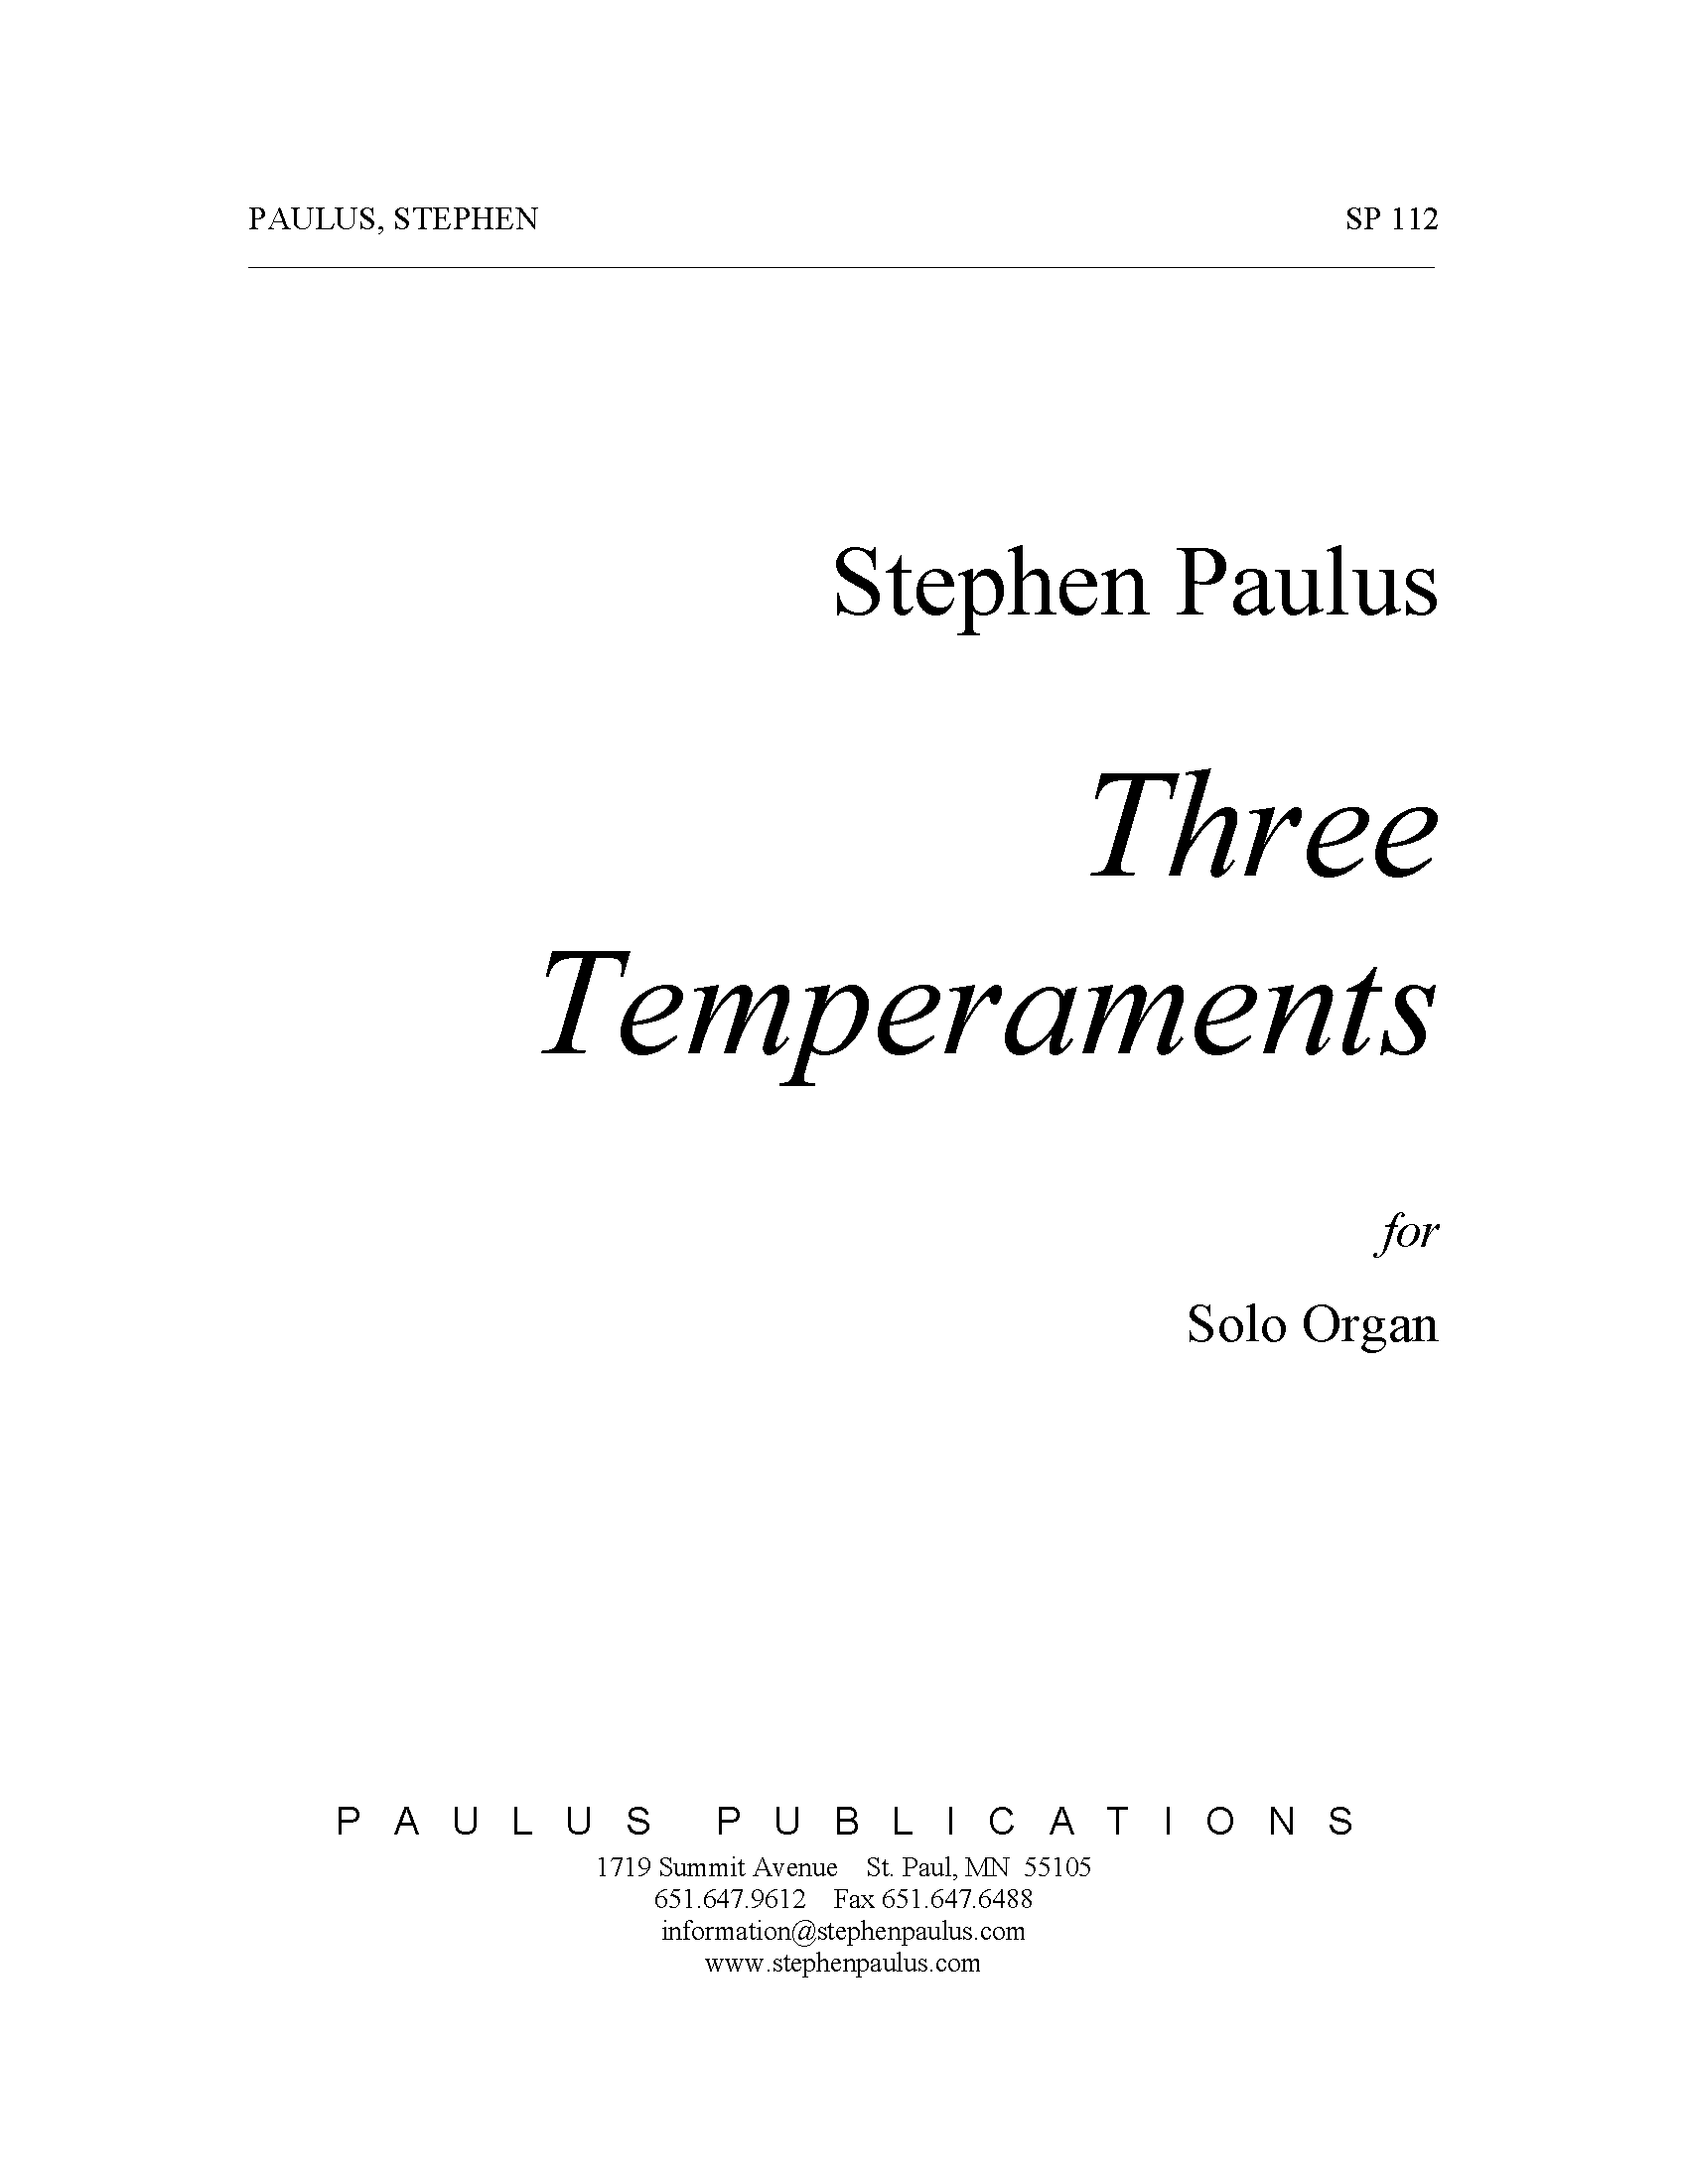 Three Temperaments for Organ